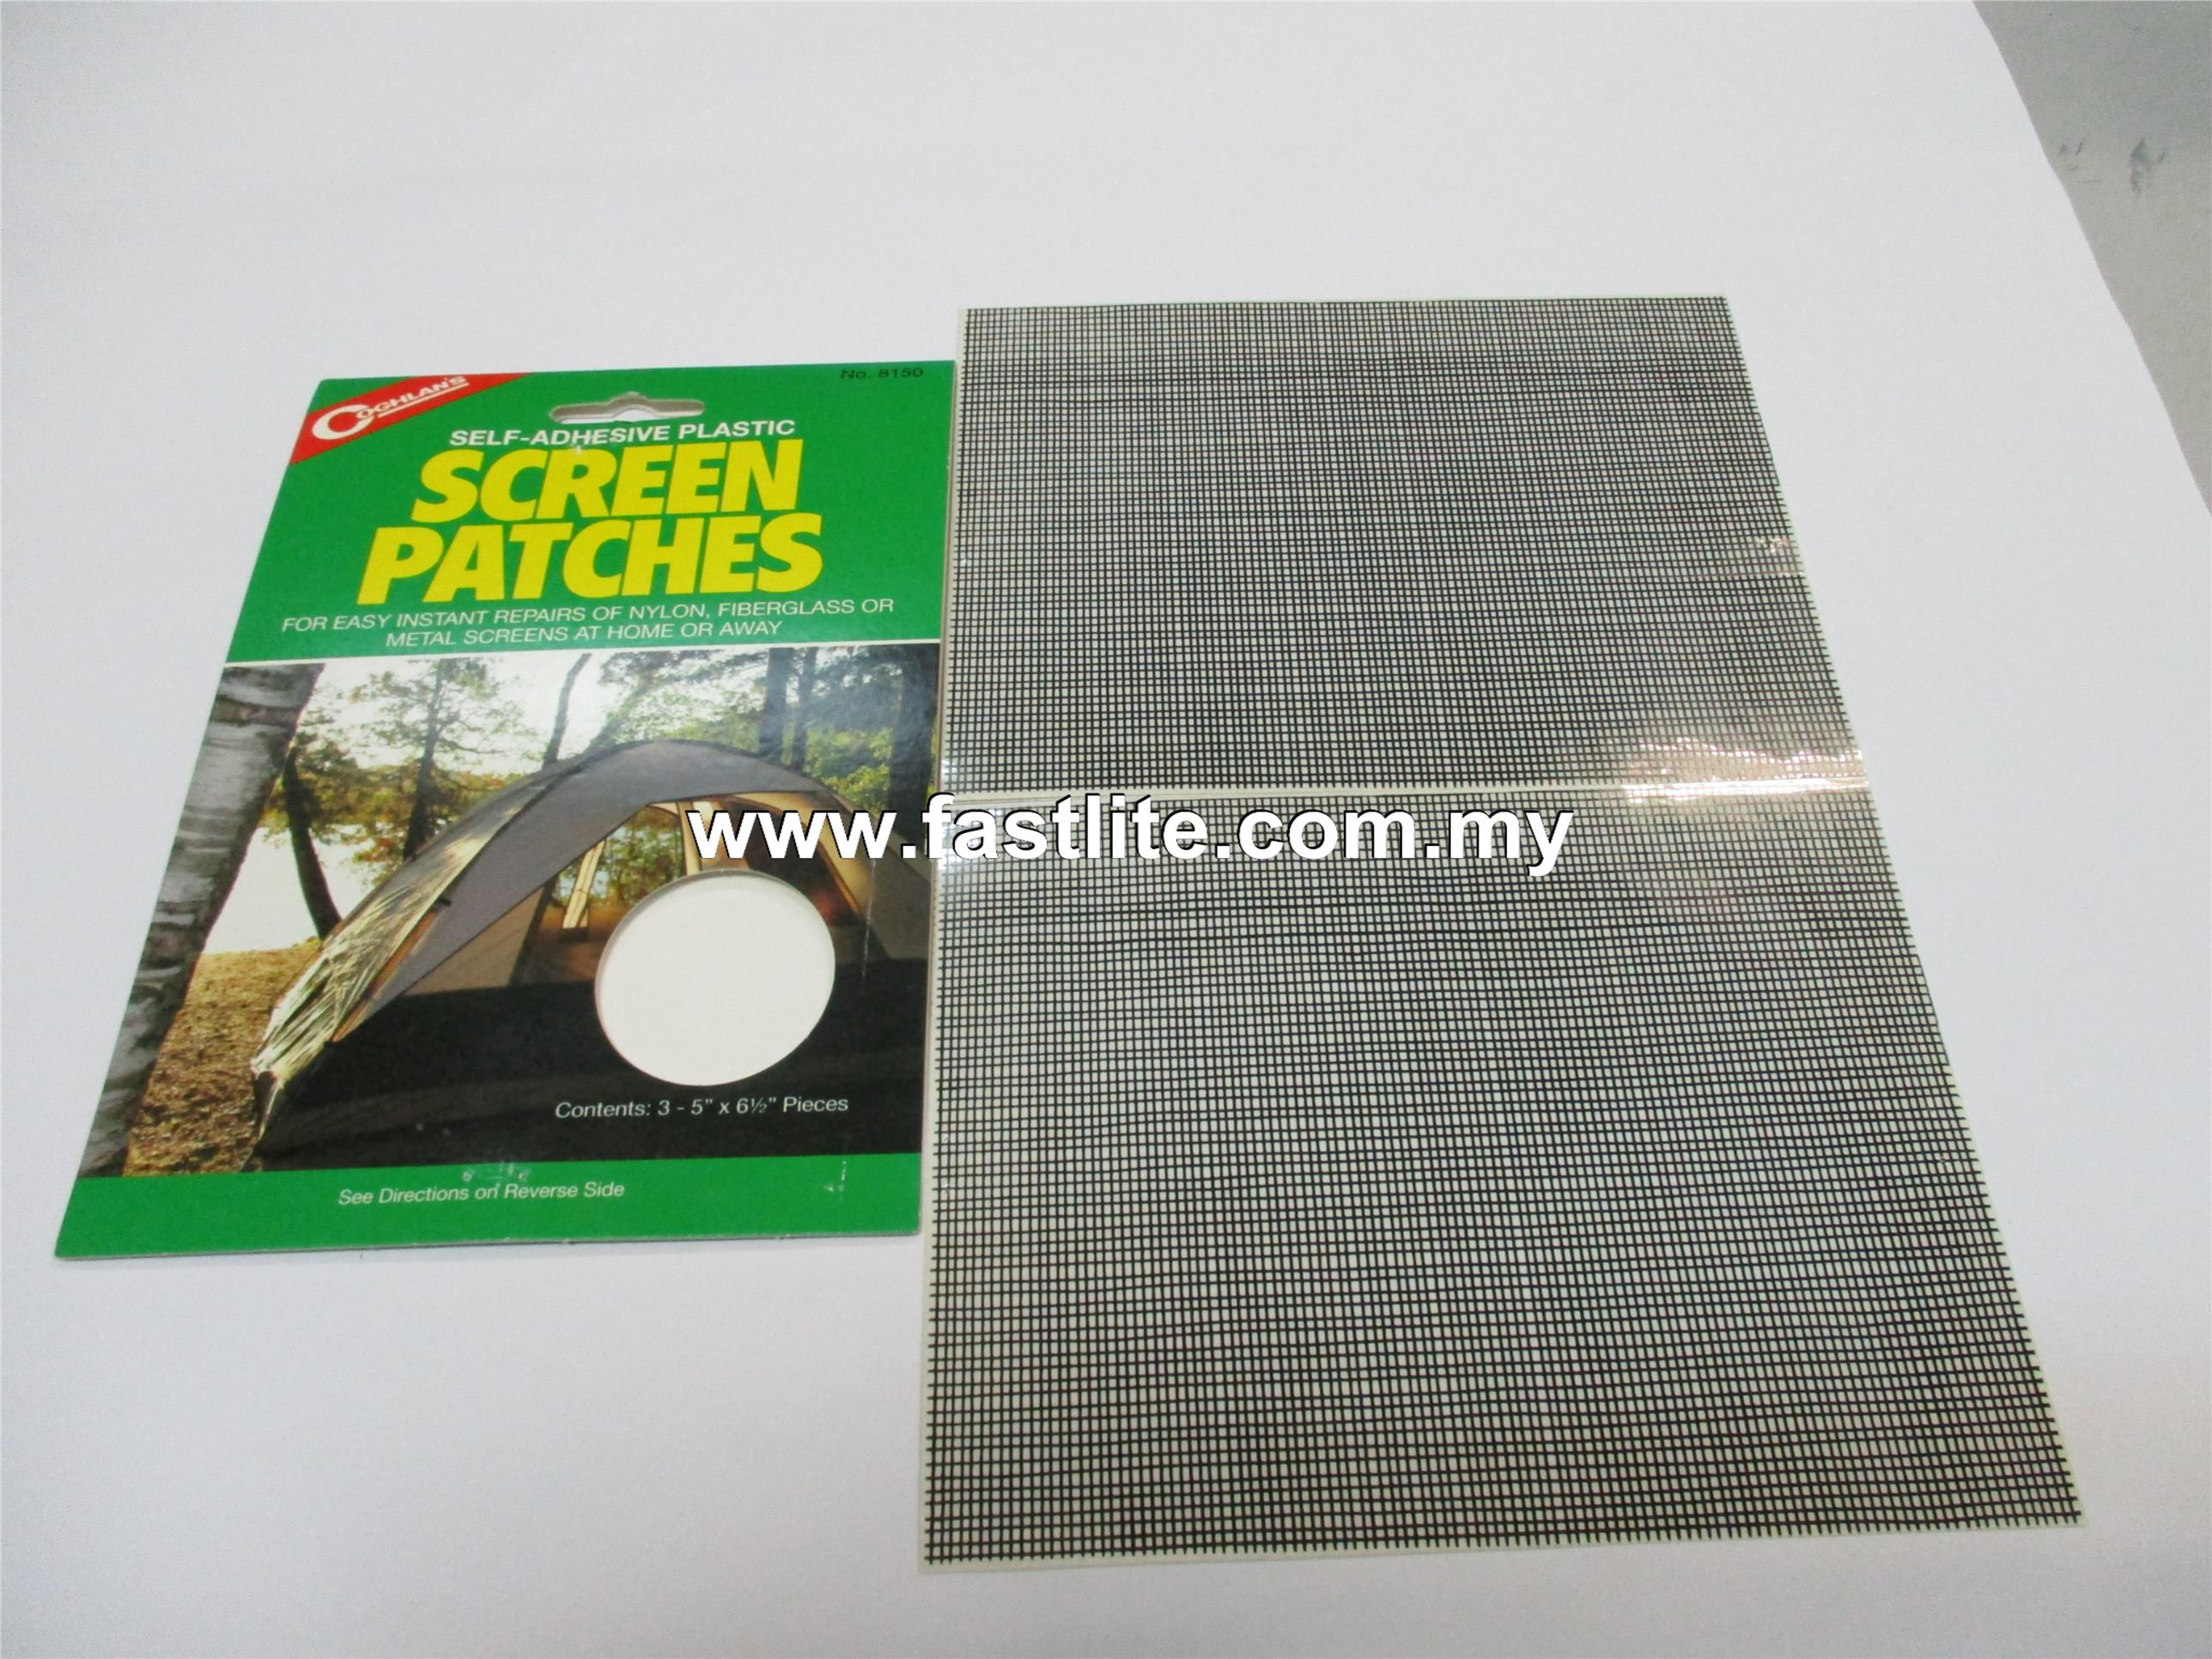 Self-Adhesive Plastic Screen Patches (for Instant Repair of Screens)